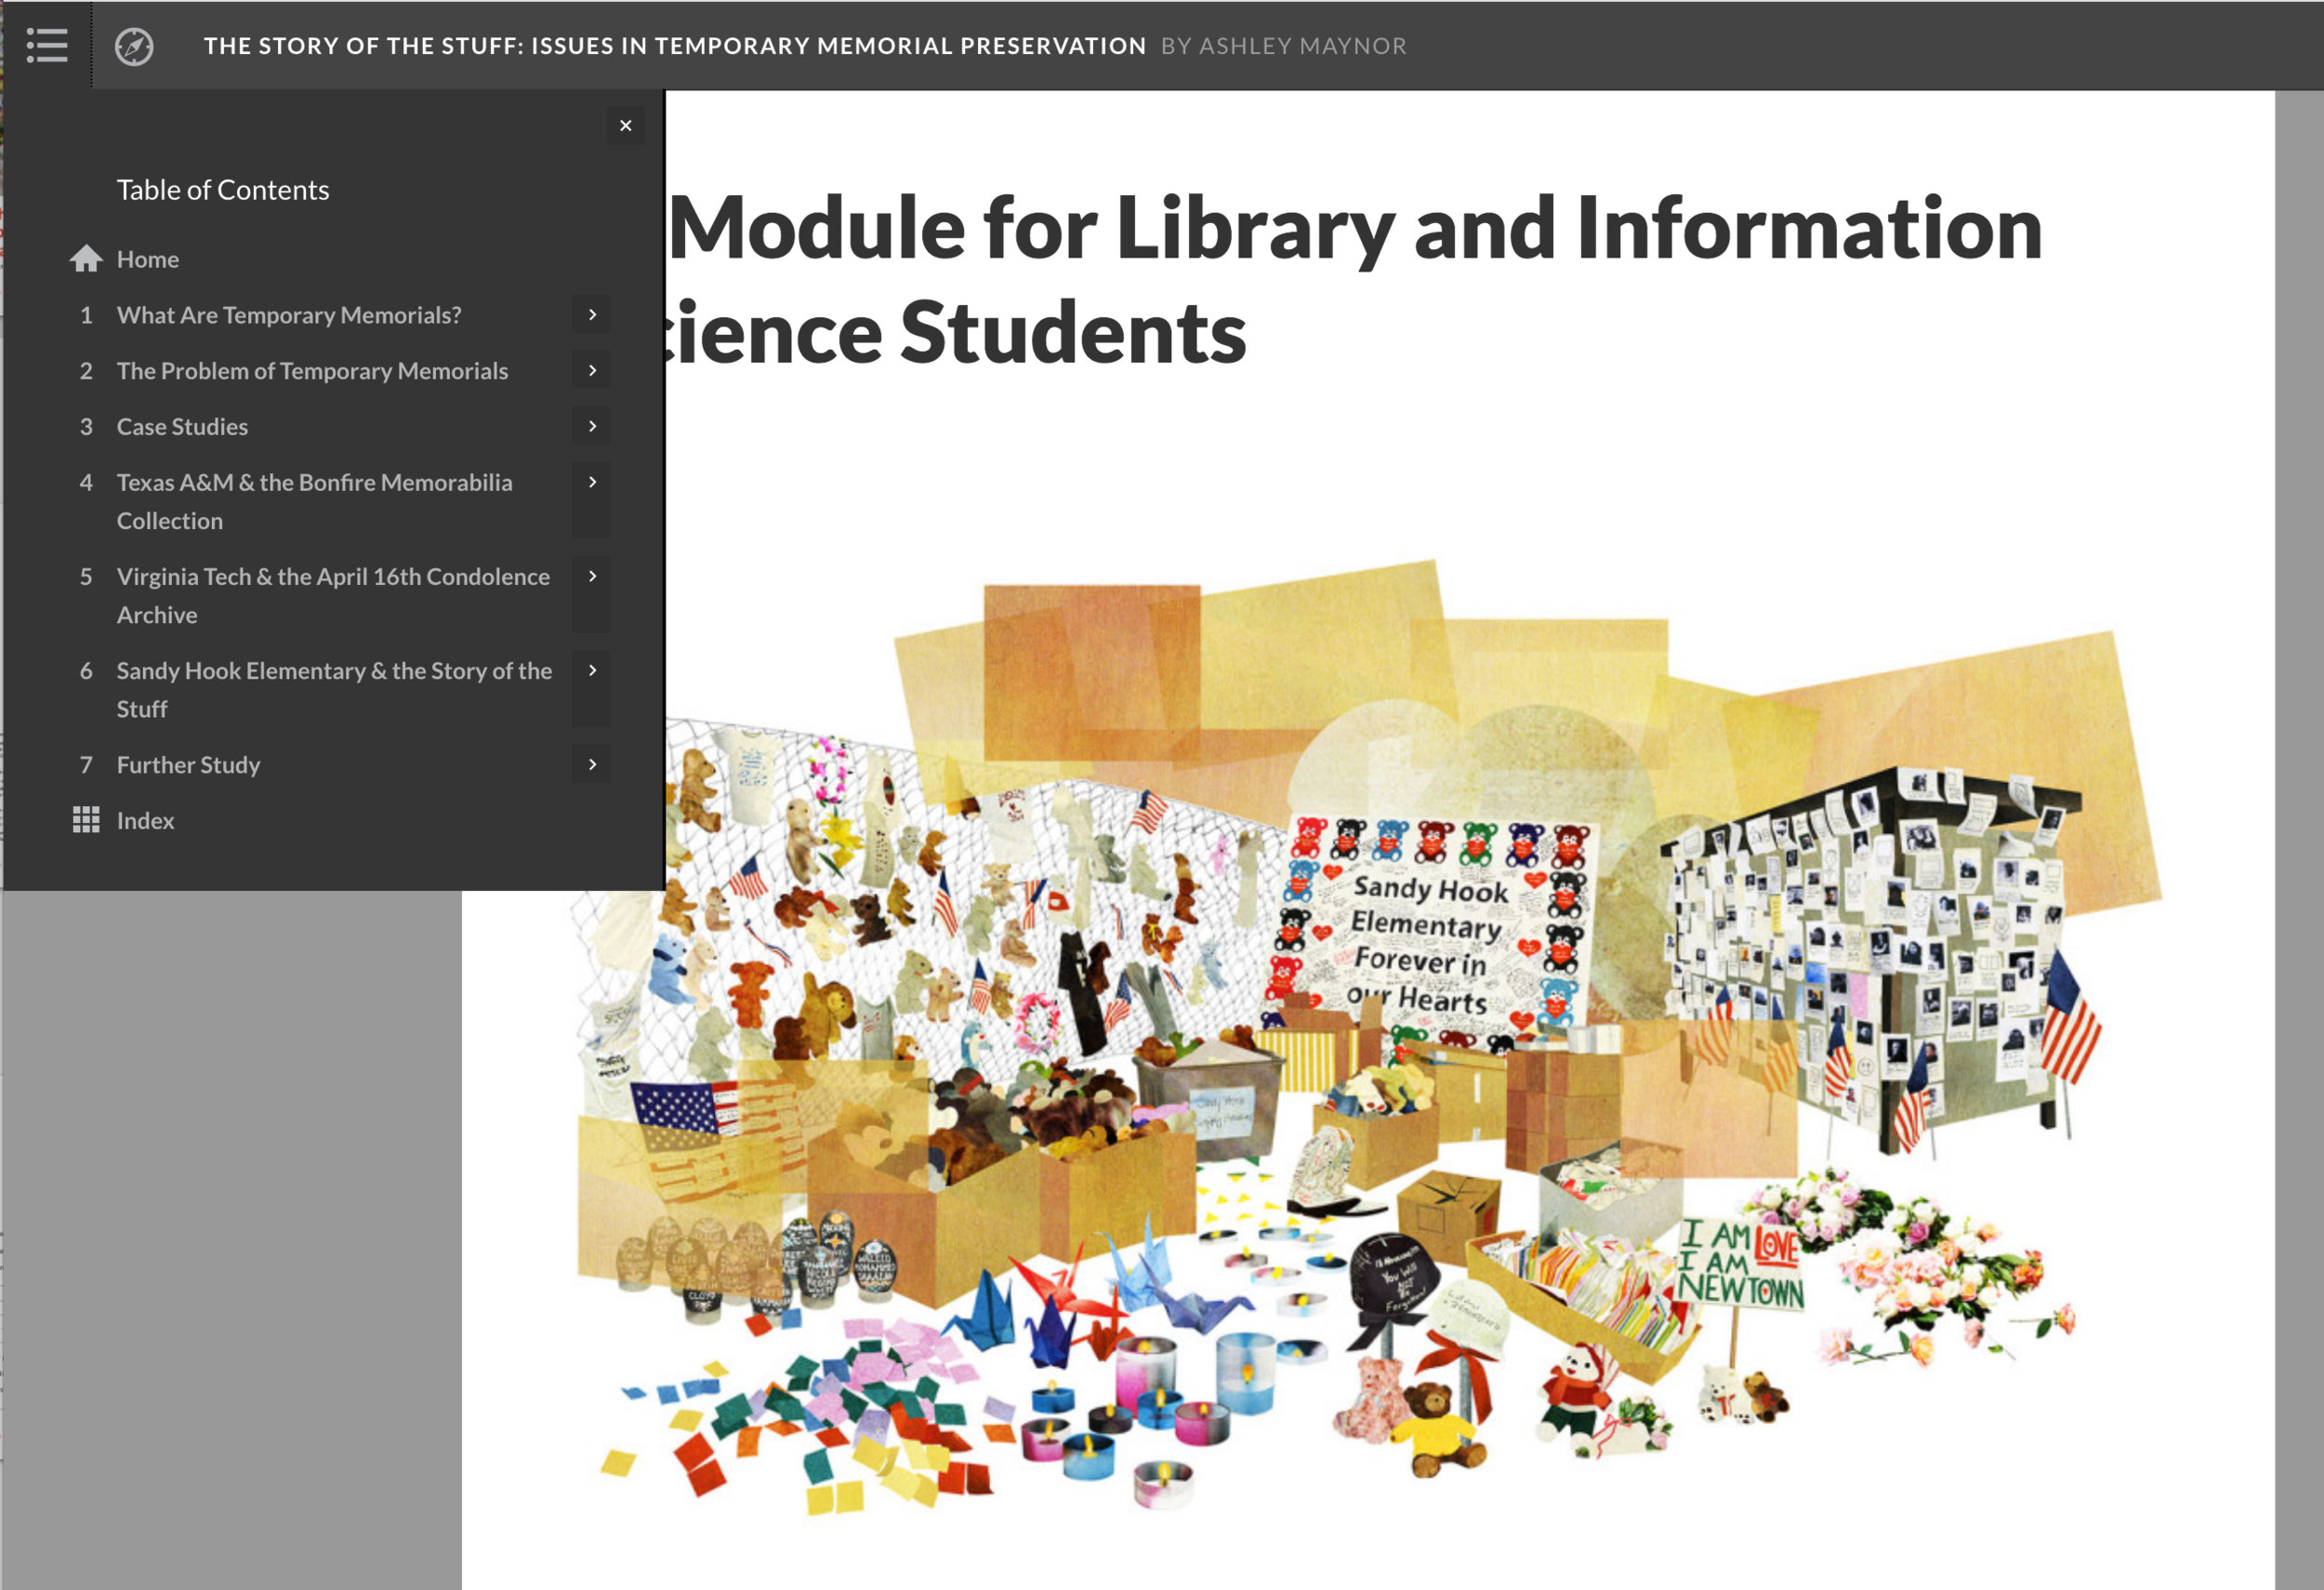 For LIS Students - This module is an online, interactive lesson designed for graduate students in Library and Information Sciences. It includes images, video, and exercises to explore the role of libraries and archives in documenting and preserving the materials left at temporary or makeshift memorials. It may used in conjunction with exploration of the The Story of the Stuff web documentary or as a standalone tutorial.